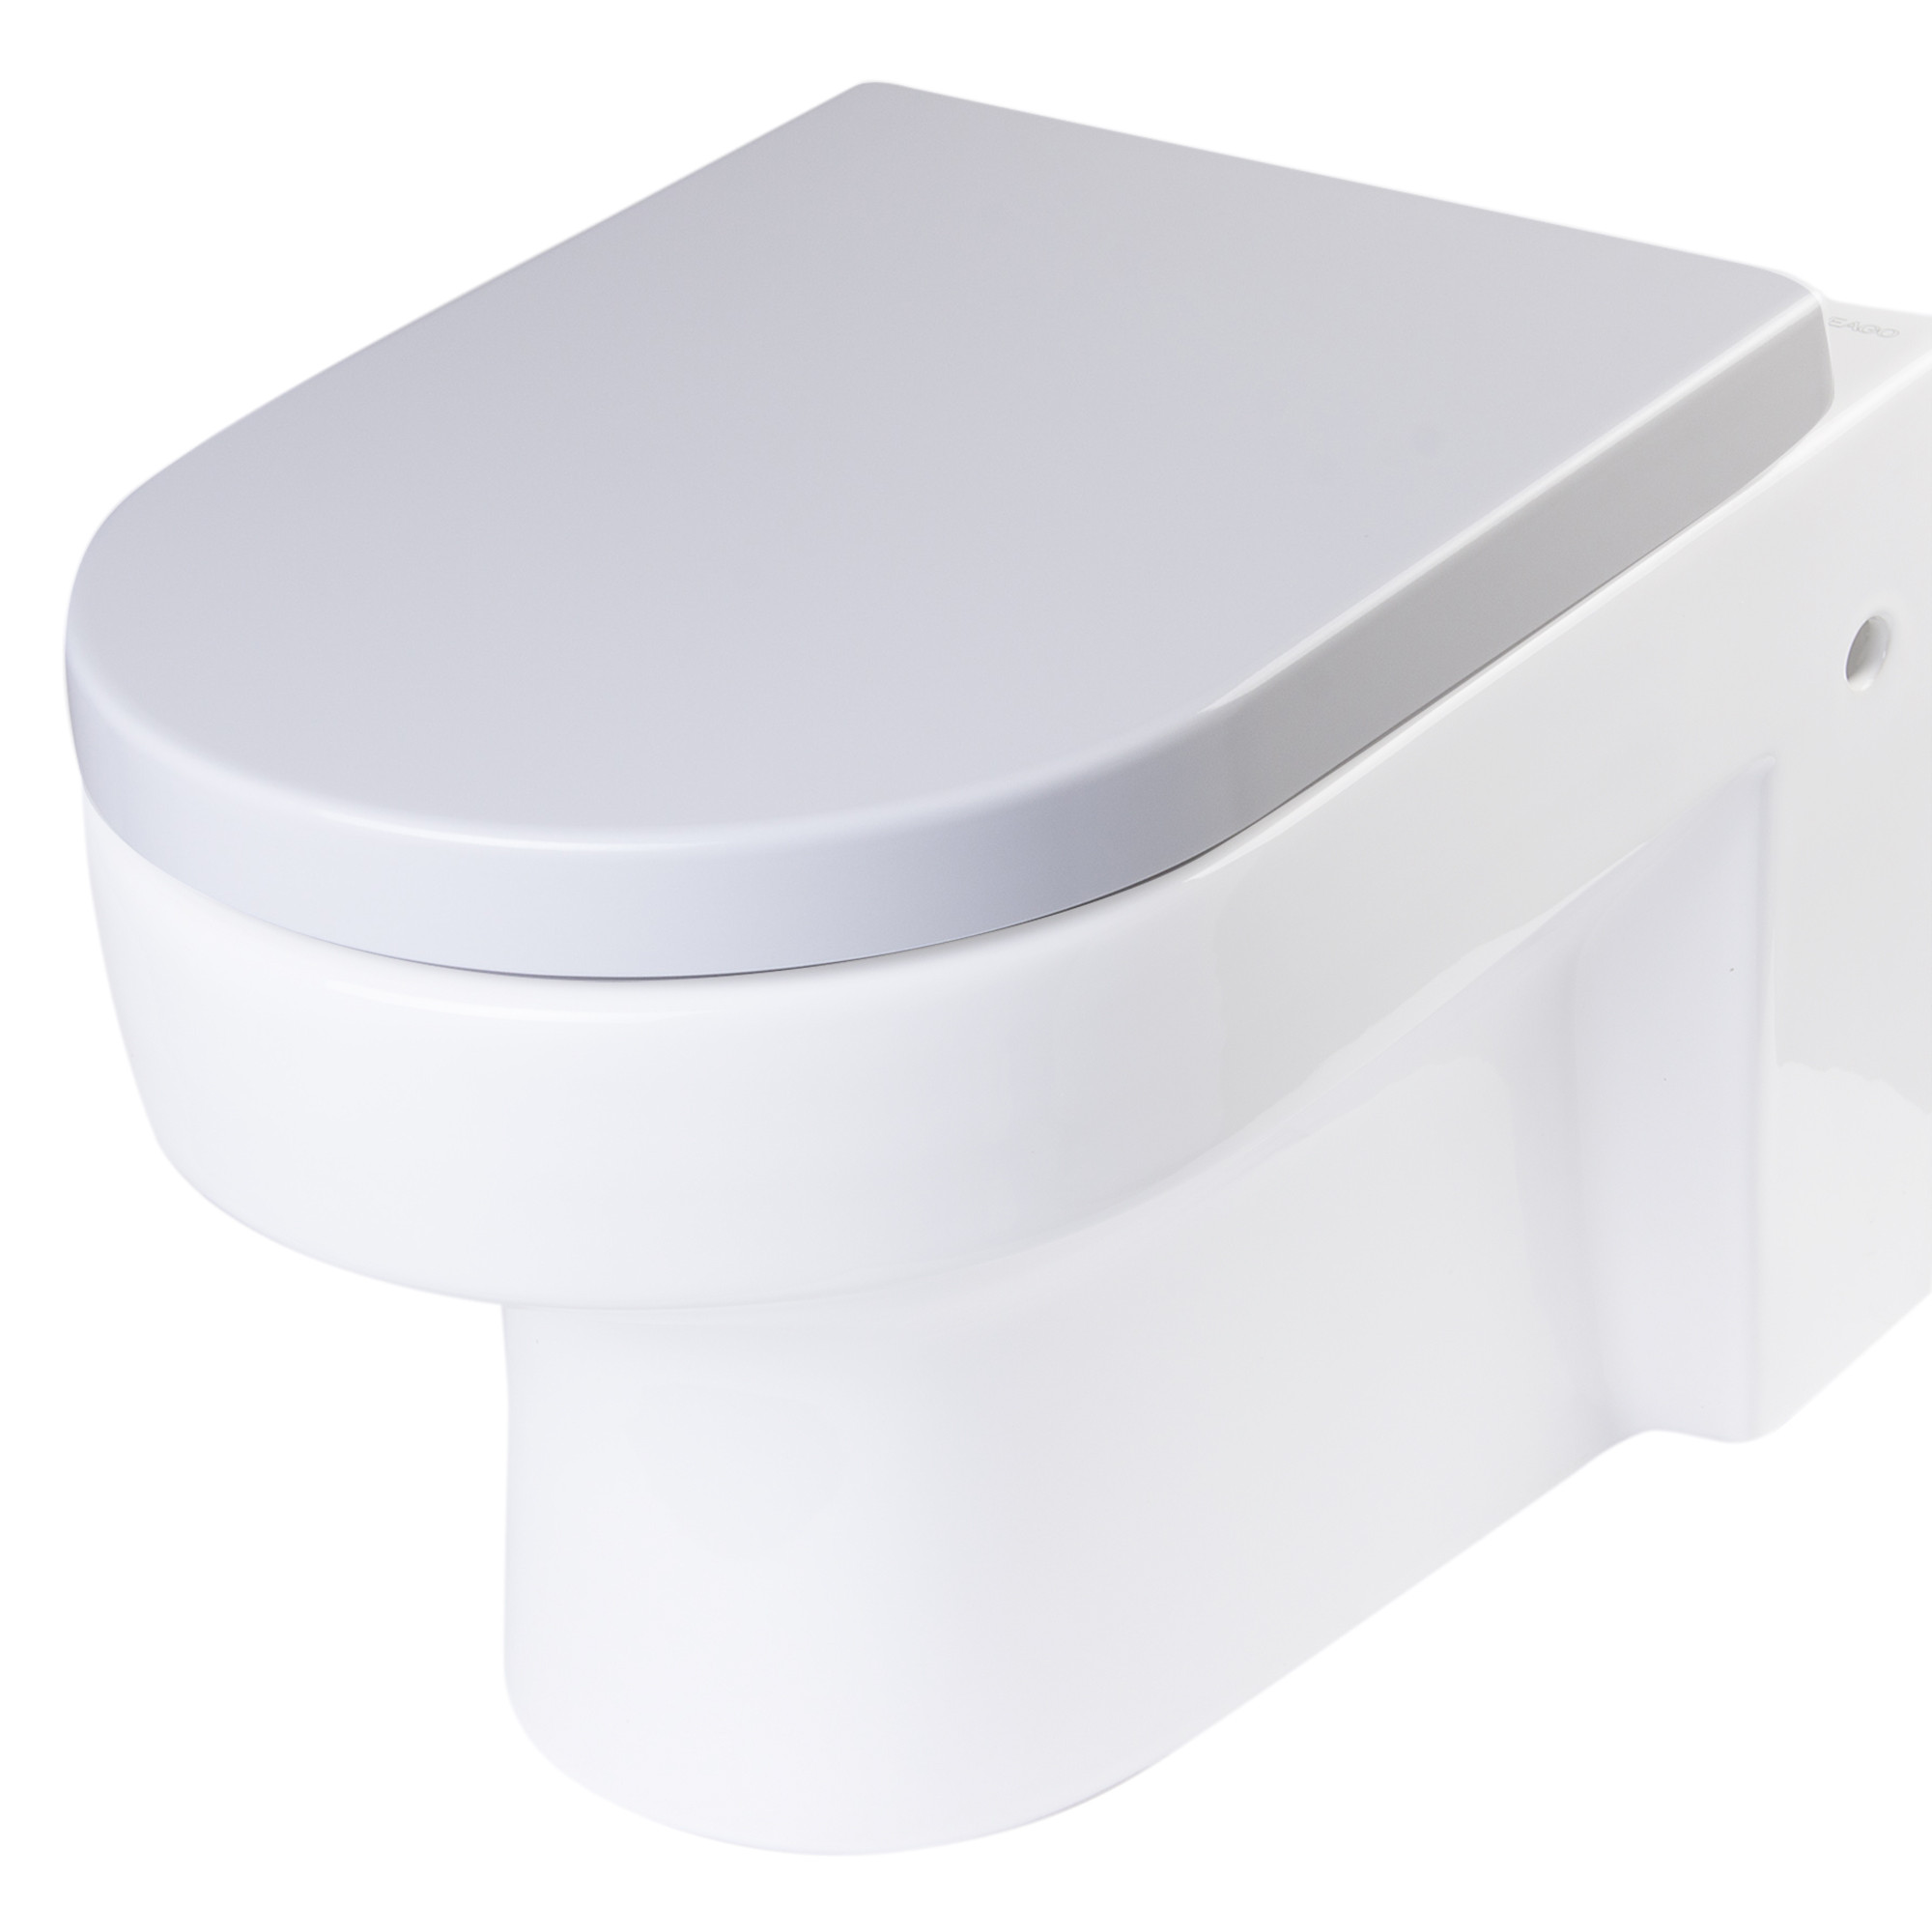 EAGO R-101SEAT Replacement Soft Closing Toilet Seat for WD101